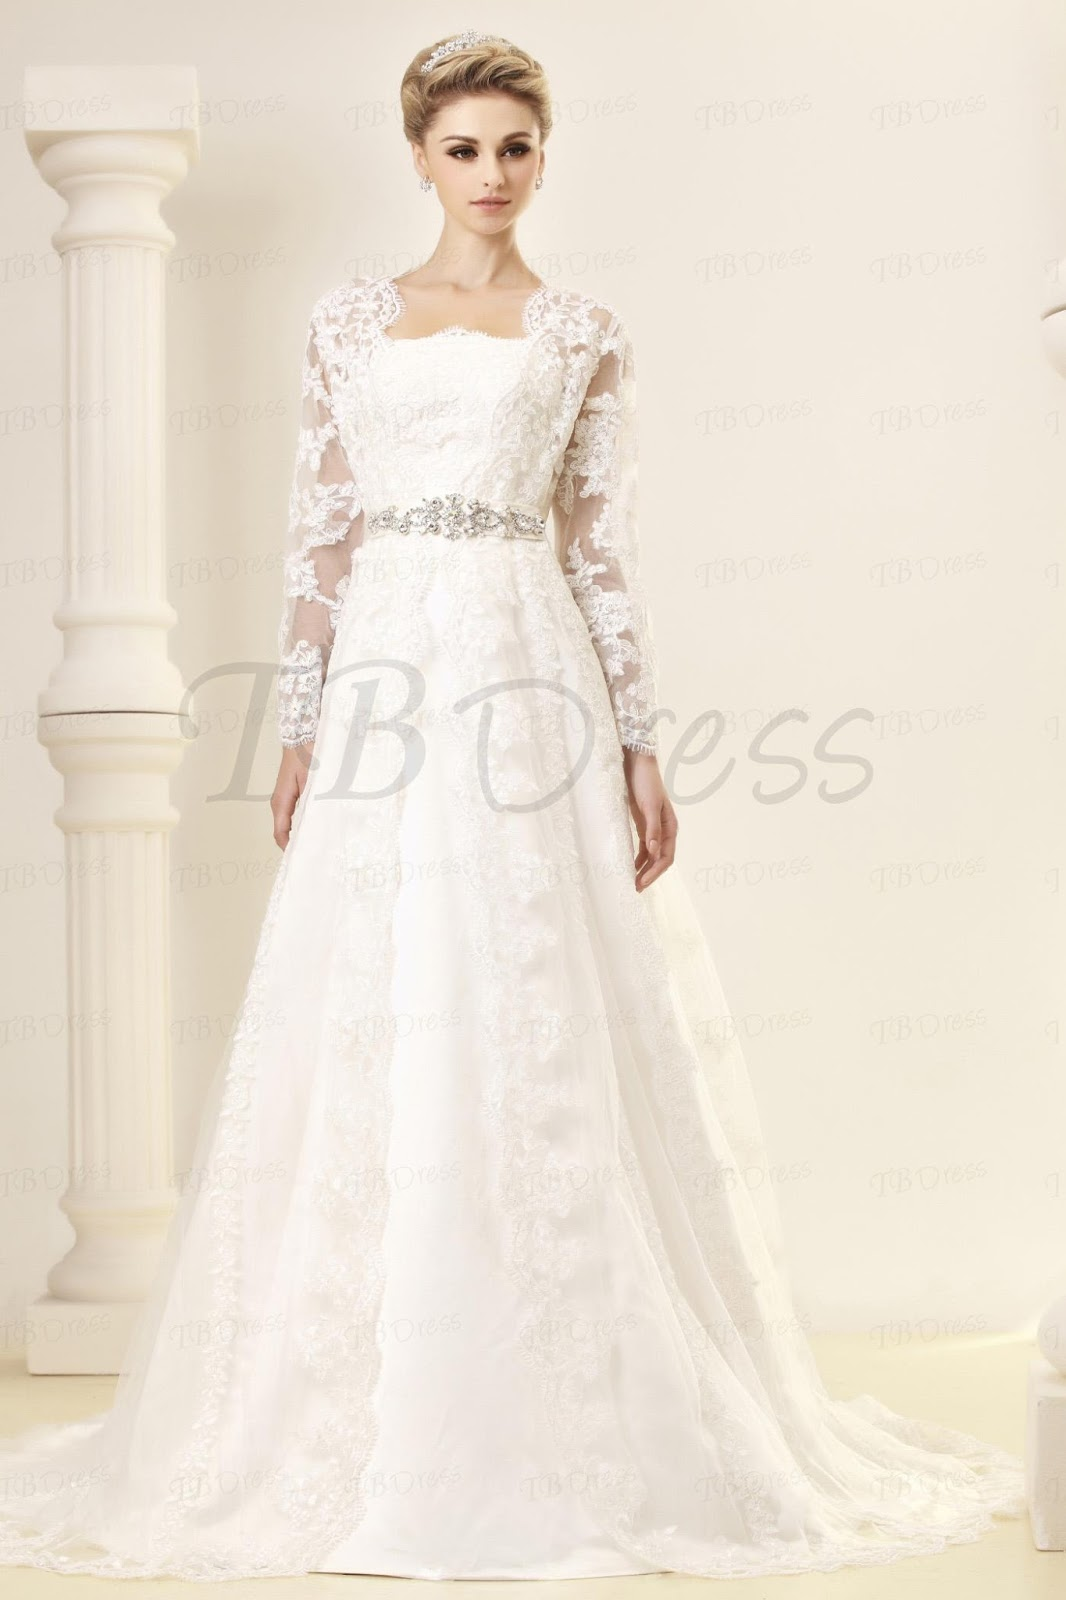 http://www.tbdress.com/product/Gorgeous-A-Line-Princess-Strapless-Chapel-Embroidery-Dashas-Wedding-Dress-9690787.html